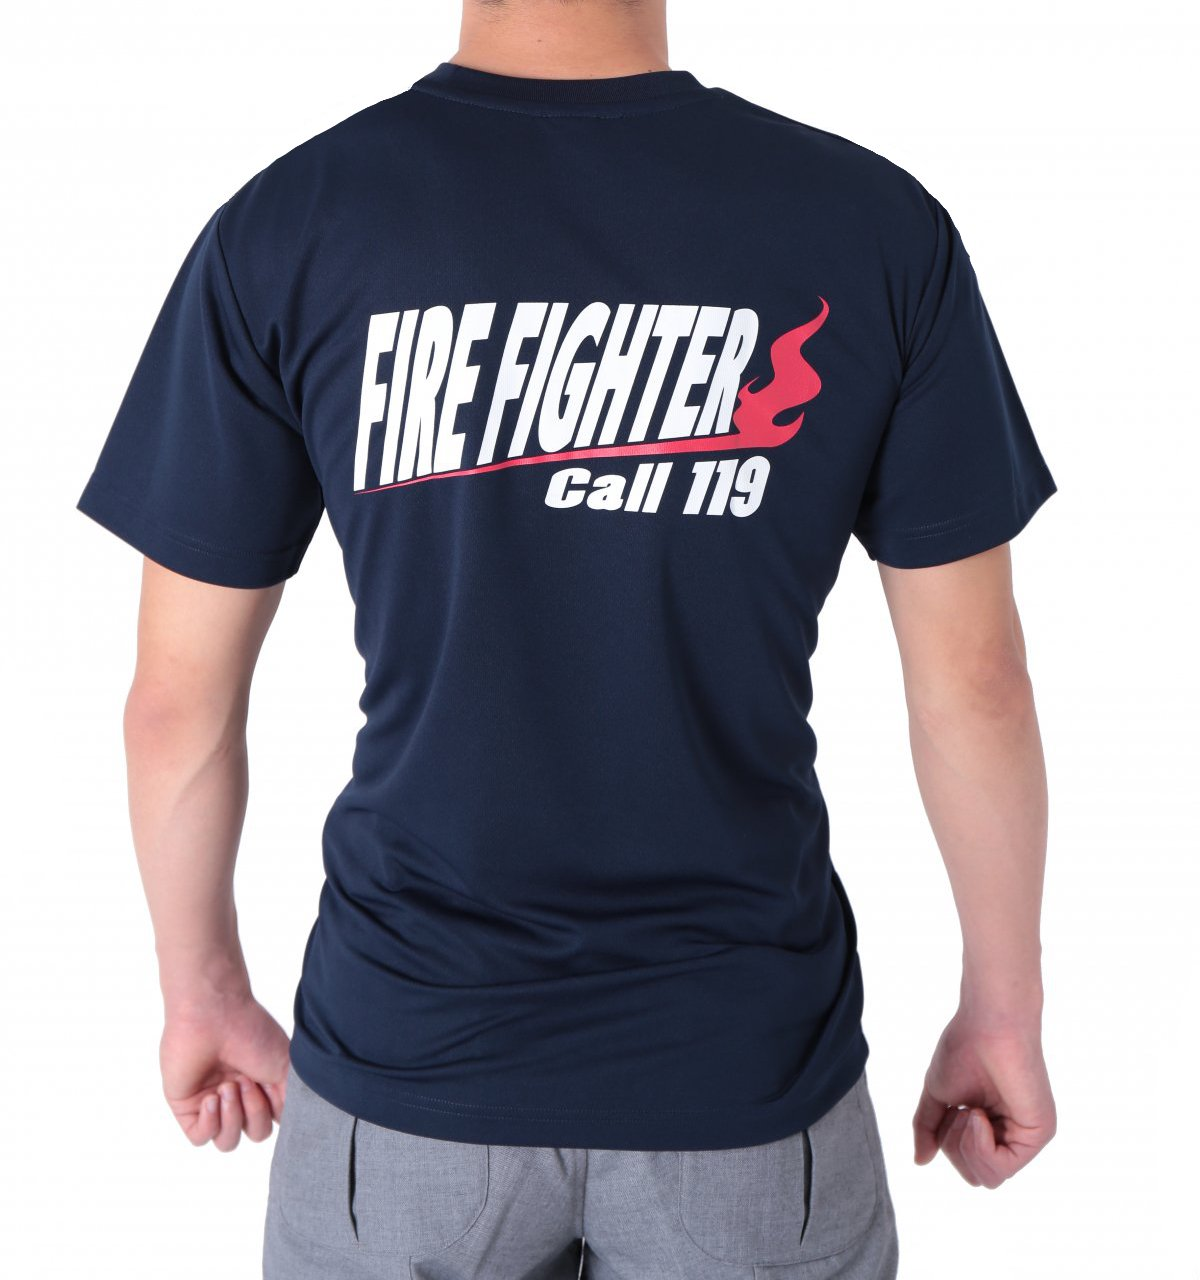 FIRE FIGHTER Call119 デザインTシャツ